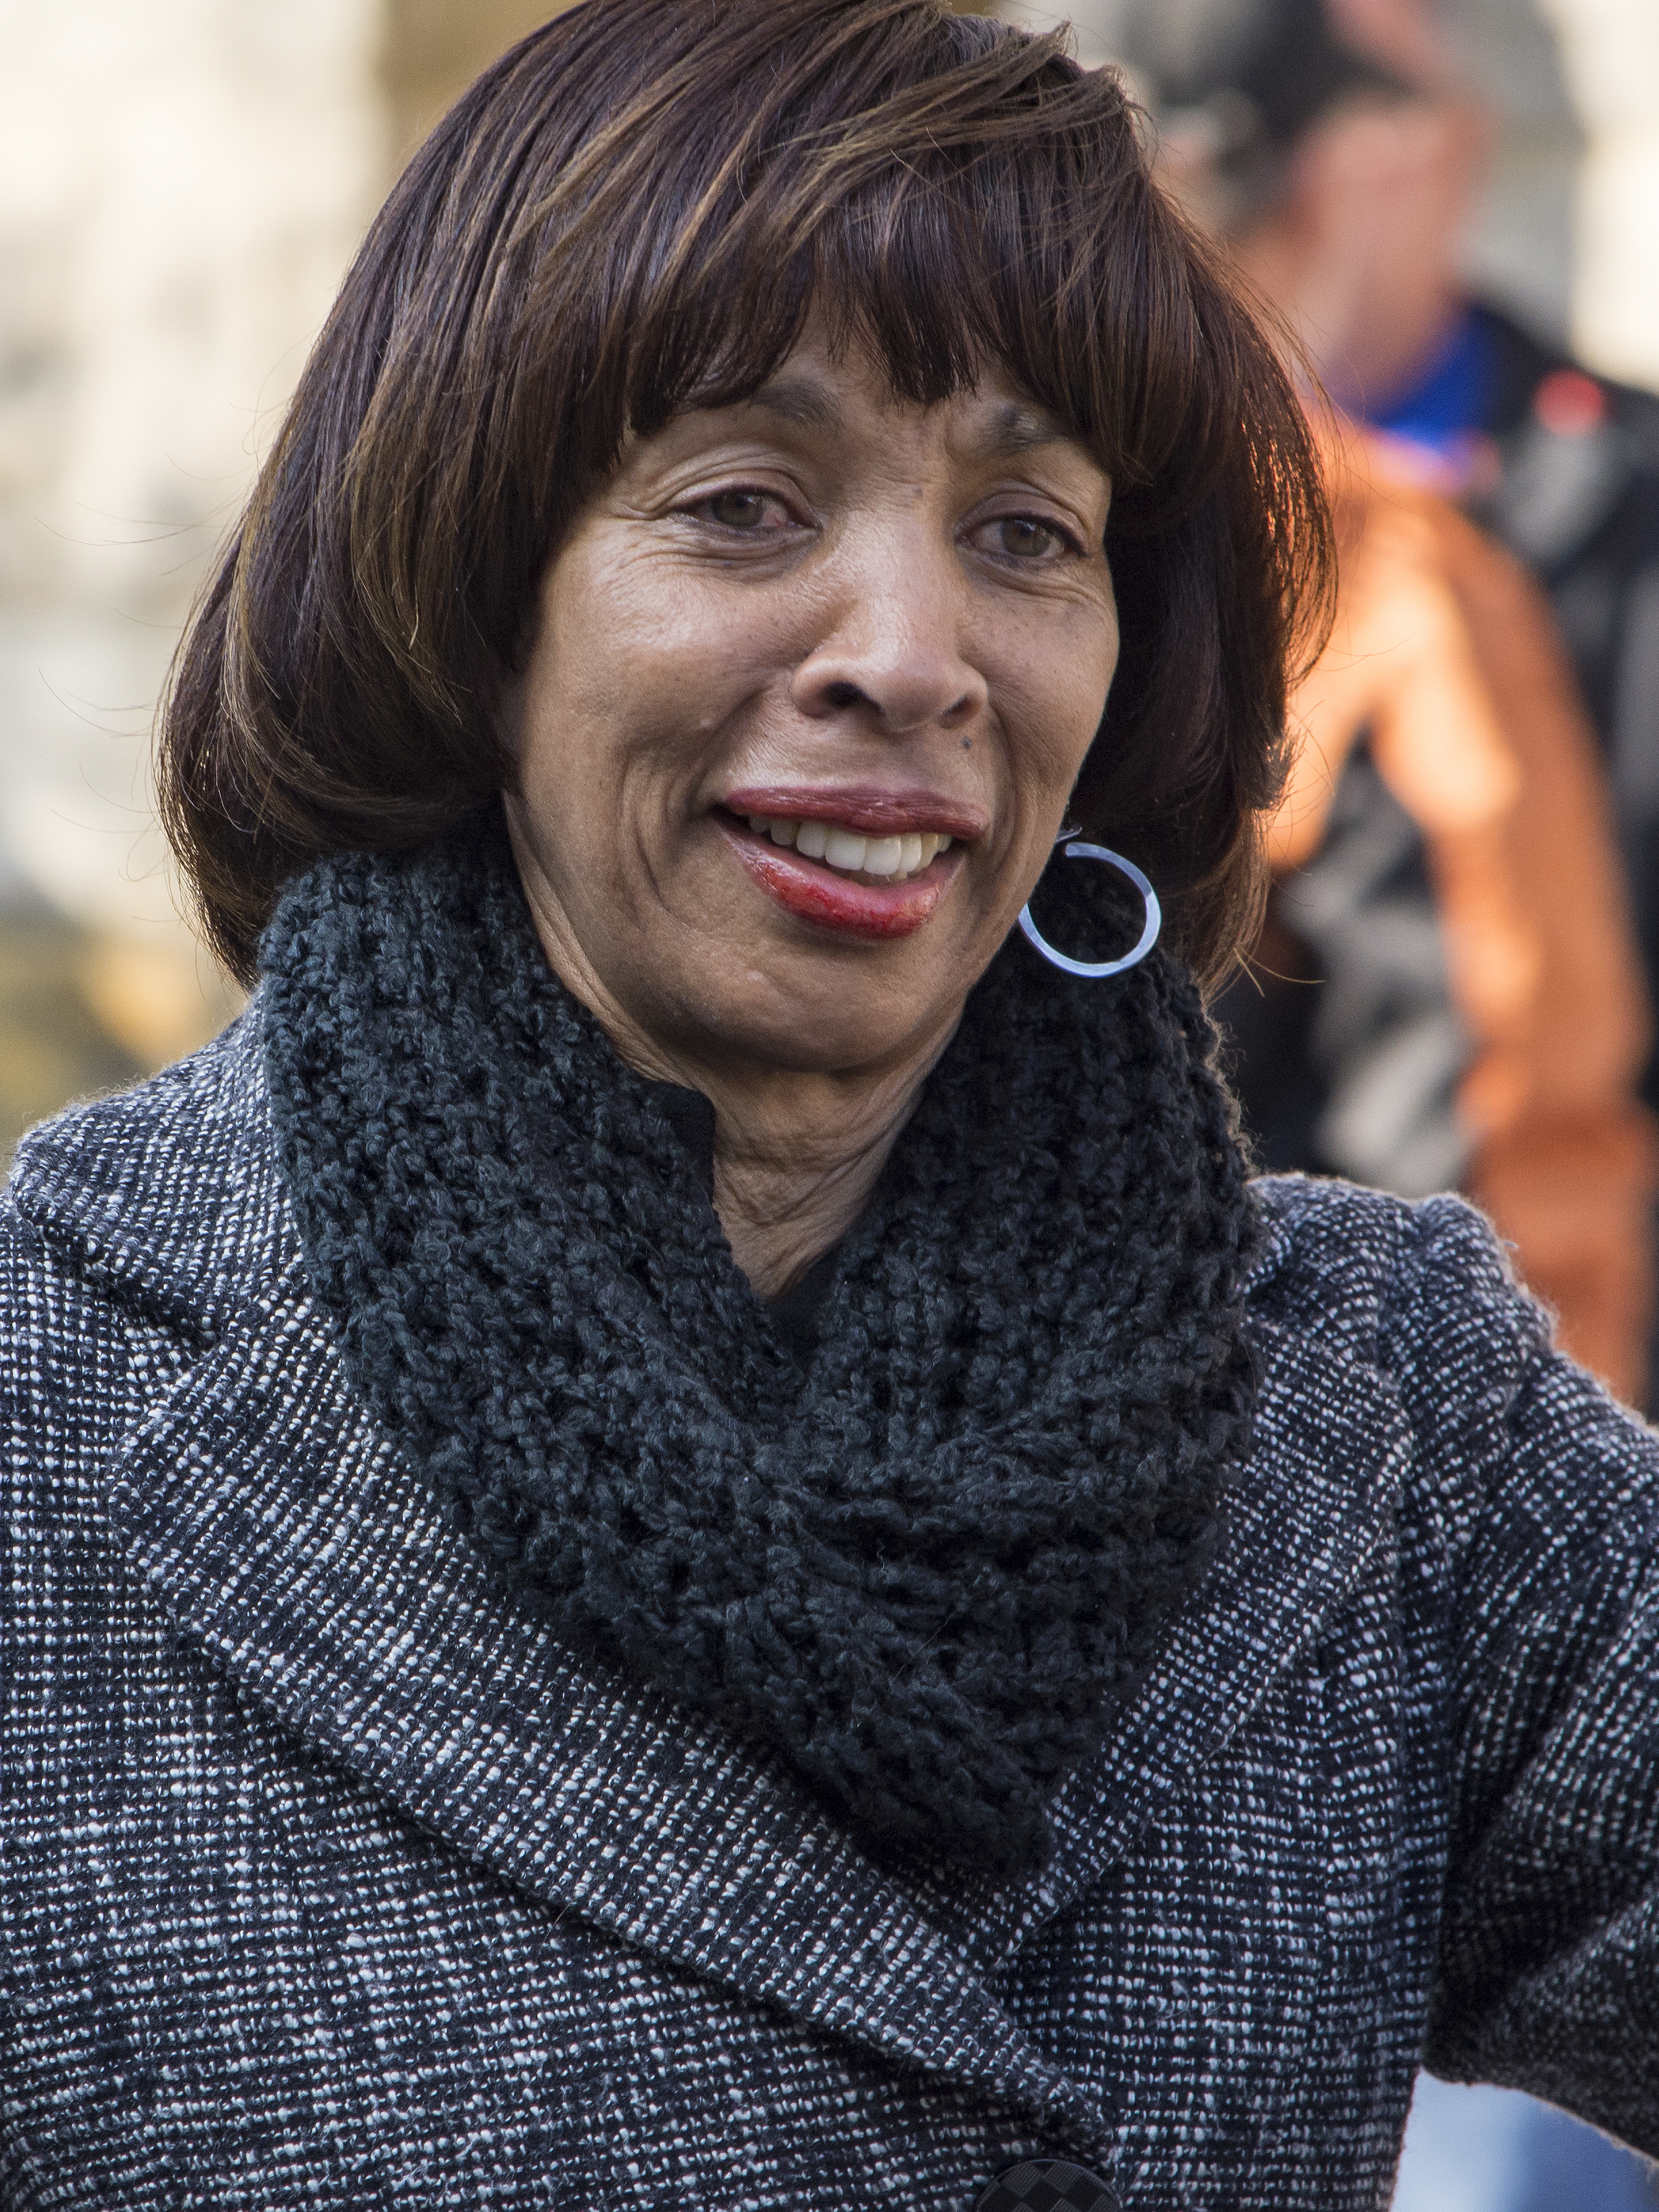 Image: Mayor Pugh